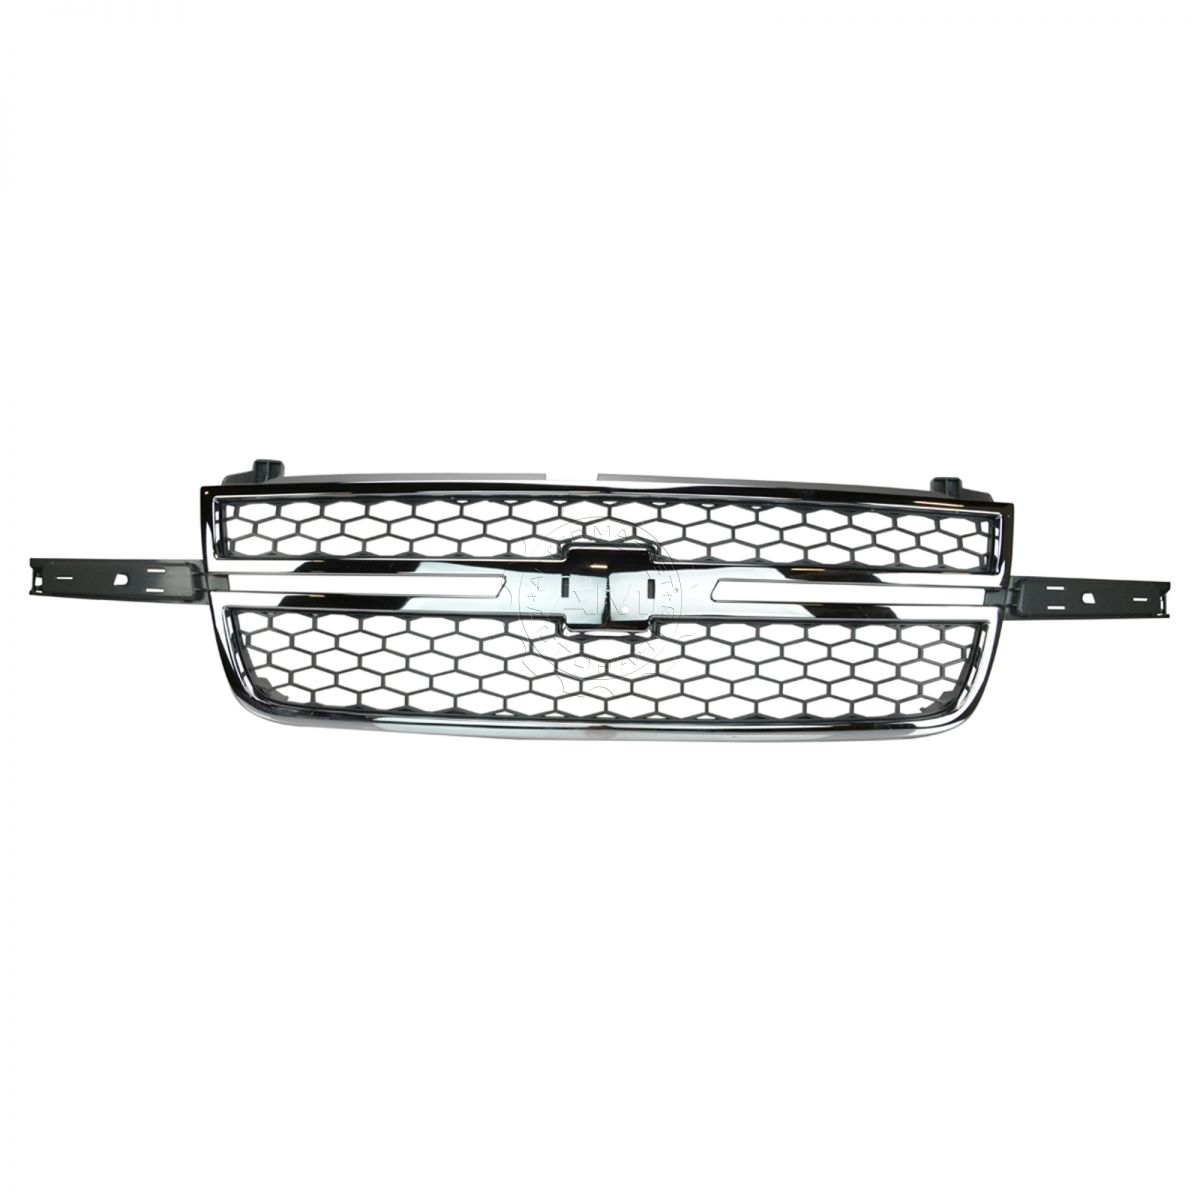 Honeycomb Grille Chrome Amp Gray For Chevy Silverado Pickup